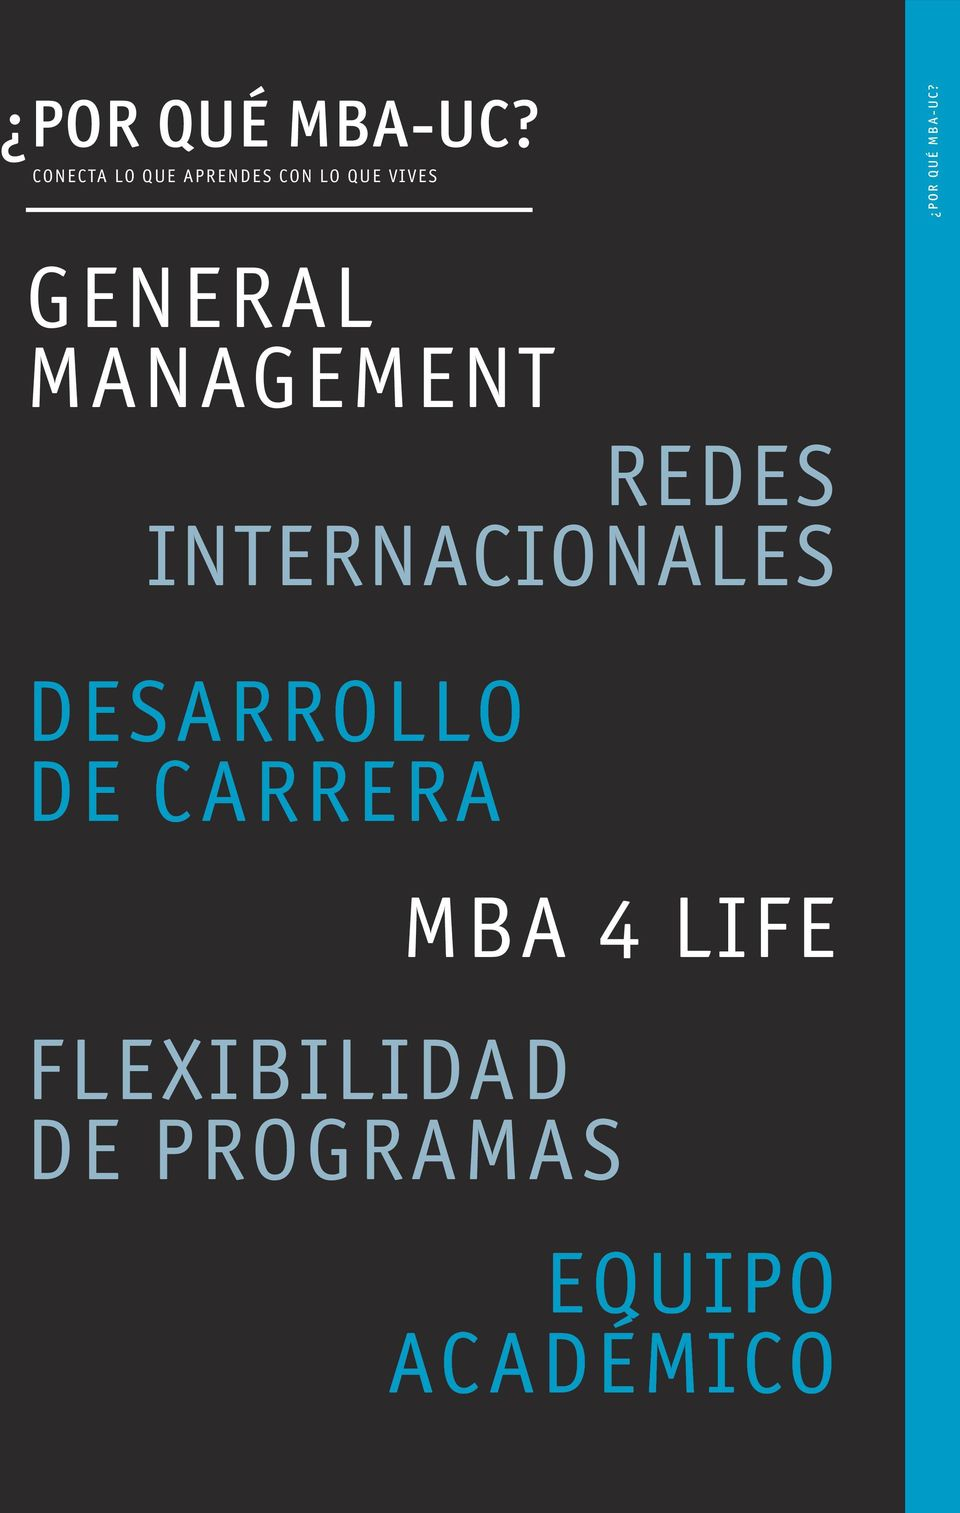 GENERAL MANAGEMENT REDES INTERNACIONALES